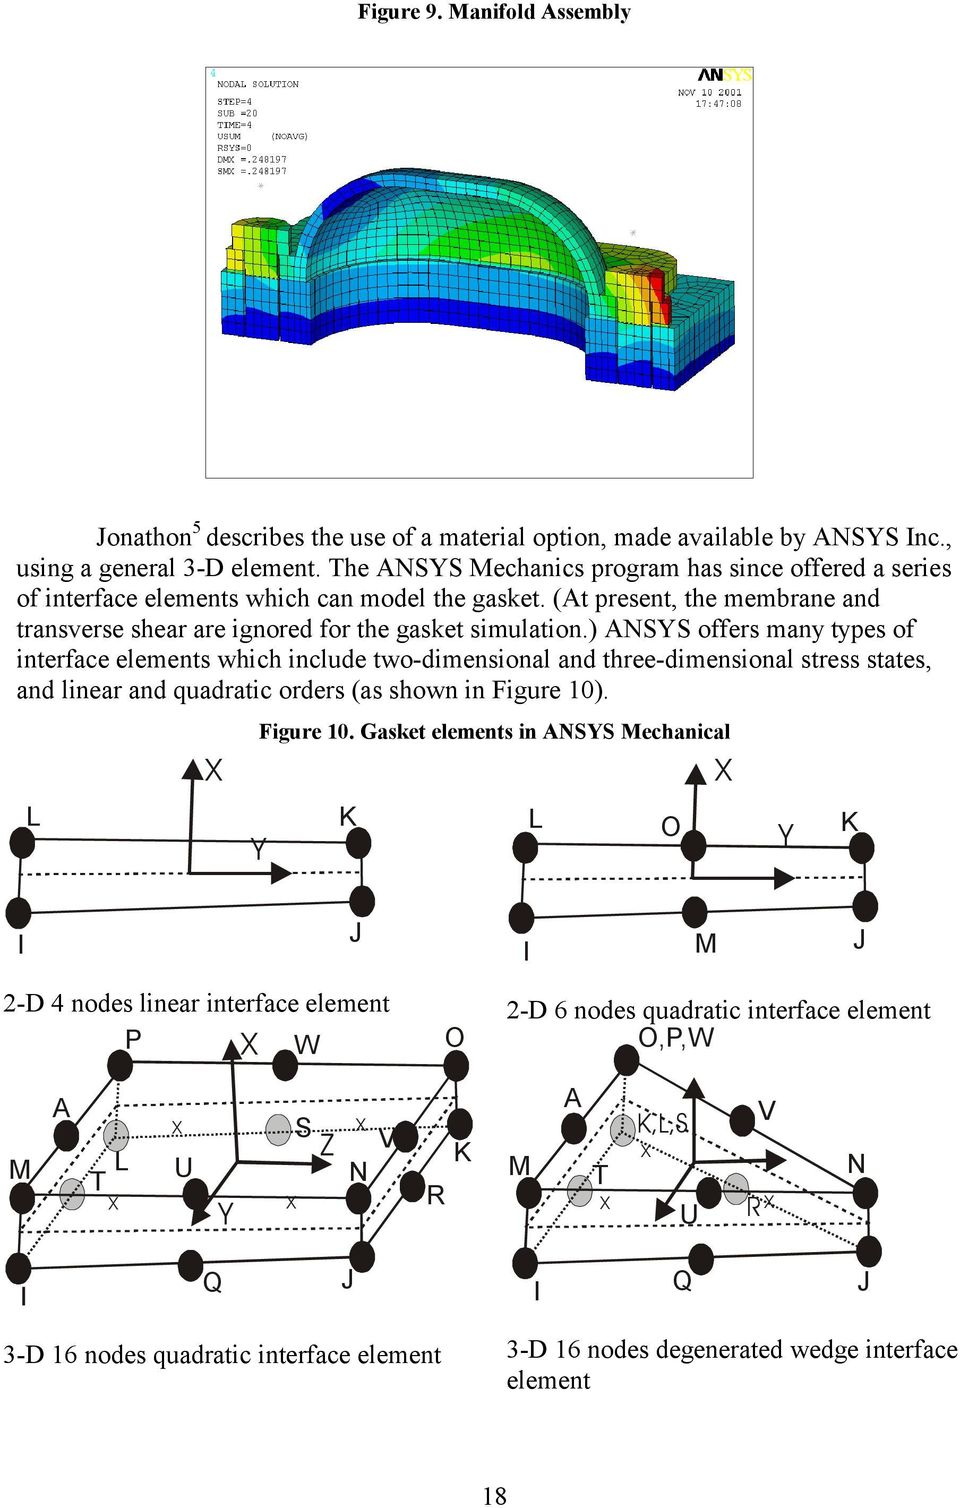 ANSYS Mechanical A Powerful Nonlinear Simulation Tool - PDF